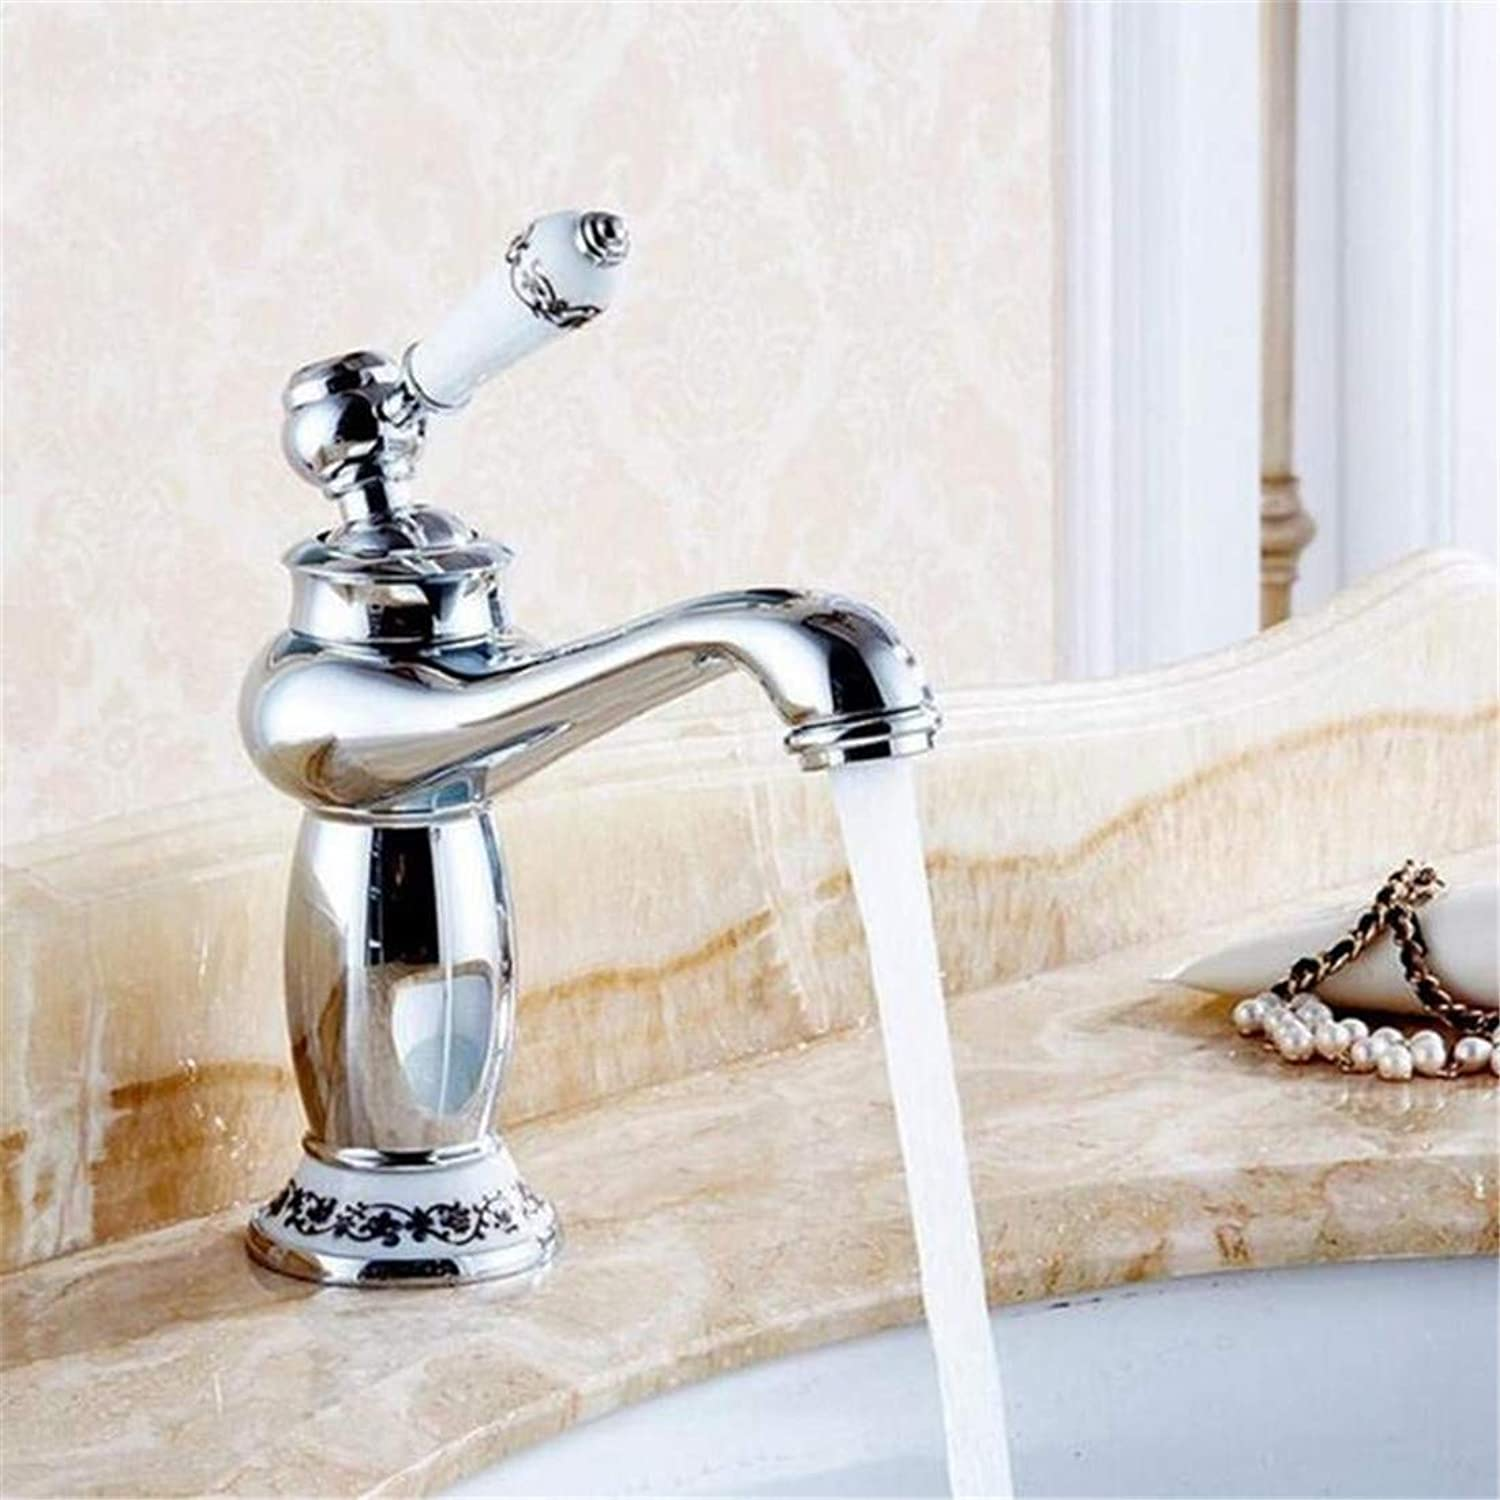 Retro Tap Modern Luxury Vintage Platingbathroom Basin Faucets Mixer Tap Ceramic Decoration Plating Single Handle Hot and Cold Deck Mount